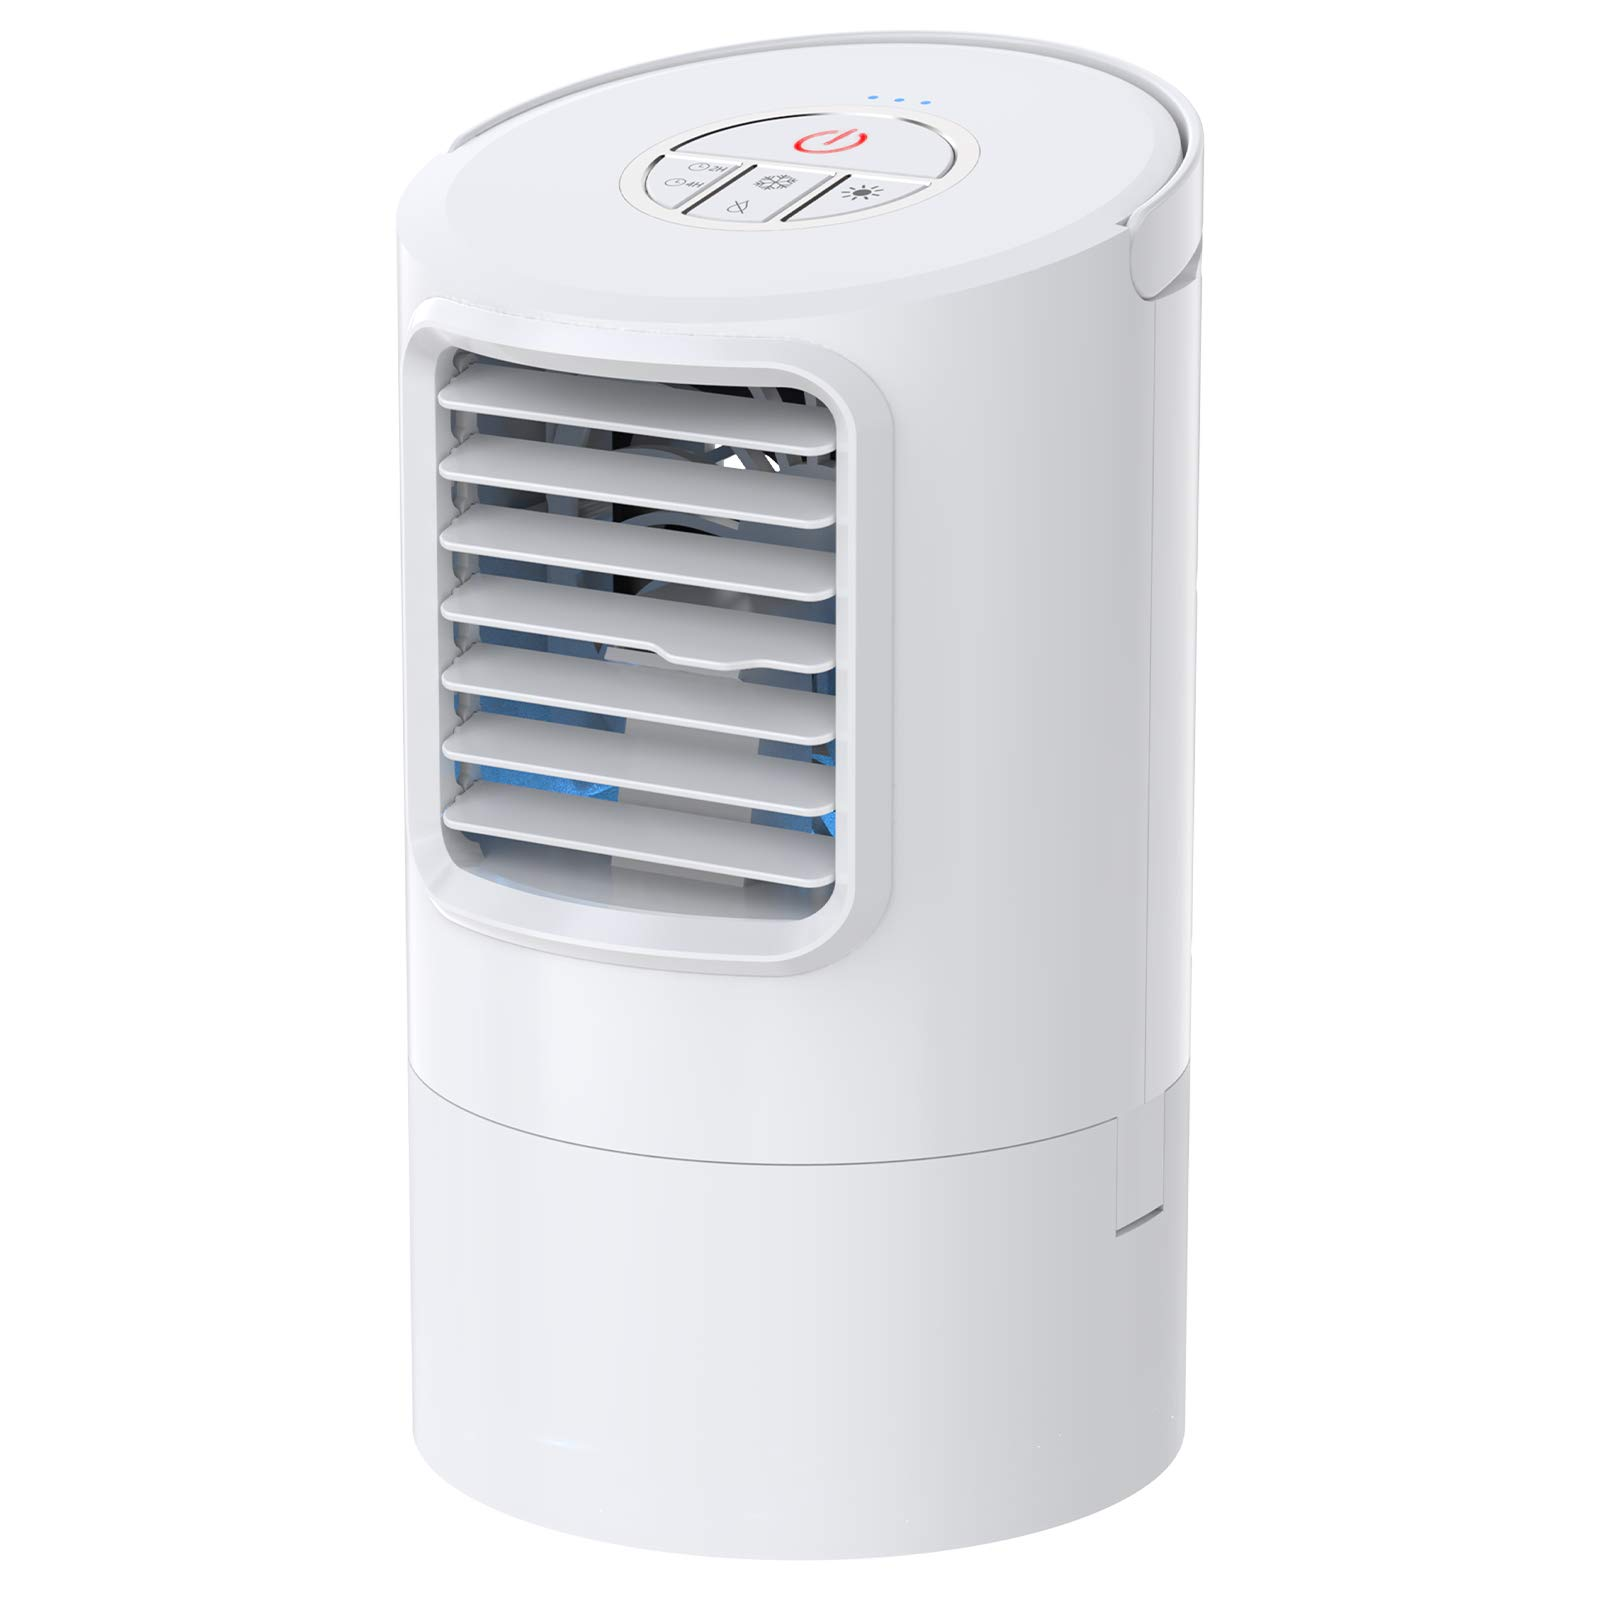 Personal Air Conditioner Fan, Portable Air Cooler, Mini Air Conditioner Evaporative Cooler For Desk Top With 2H/4H Timer, Adjustable 3 Speeds Misting Personal Space Cooler For Home, Office…